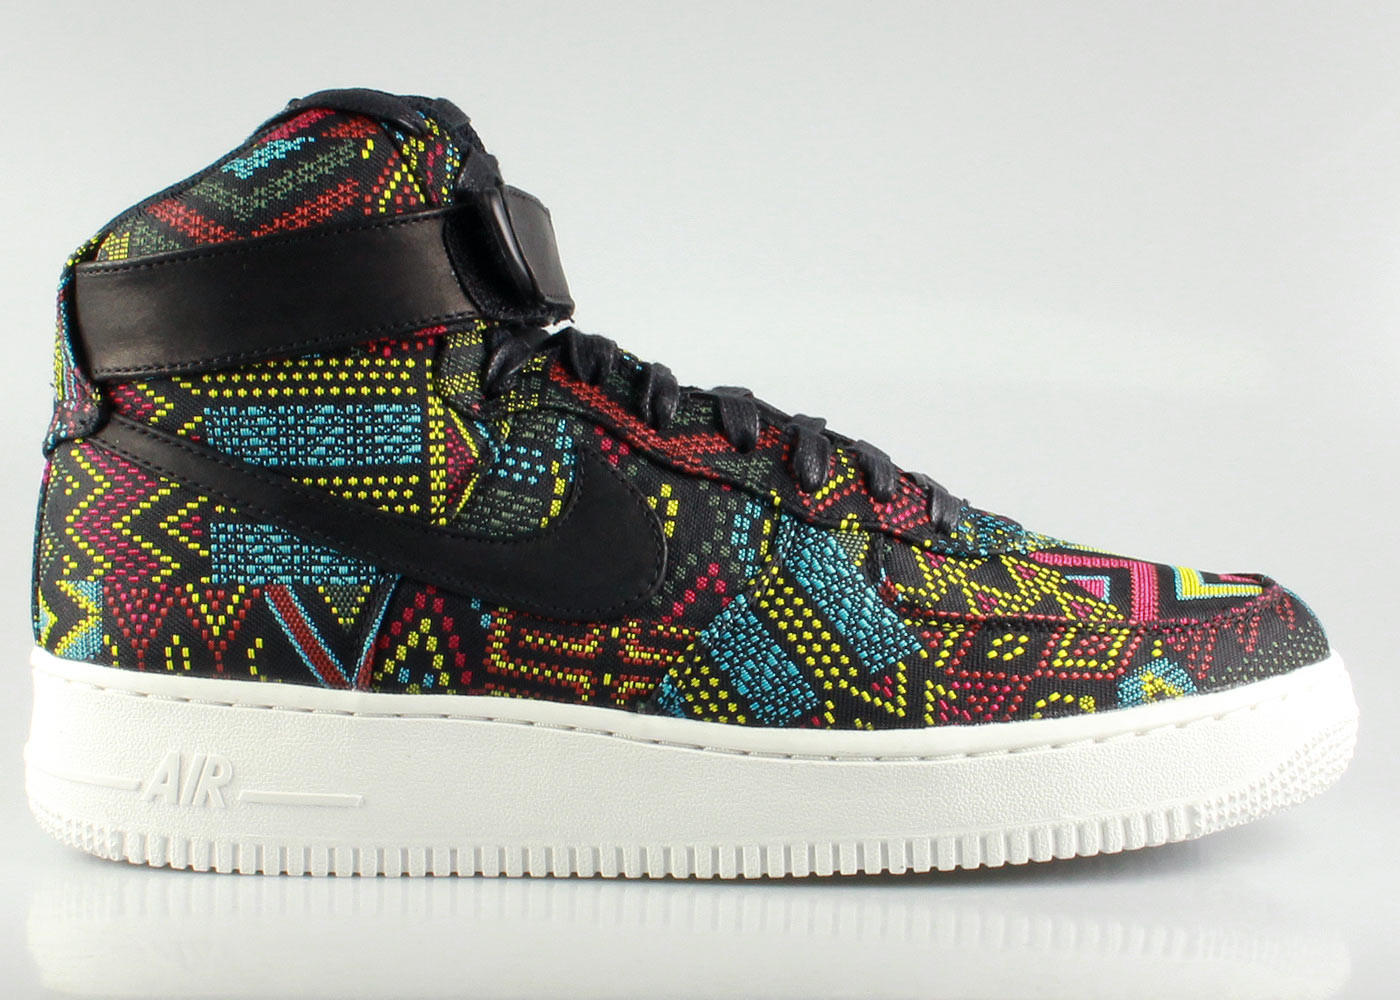 Nike Men s Air Force 1 High QS BHM - from KickzStore  0b8a8d7a7b67